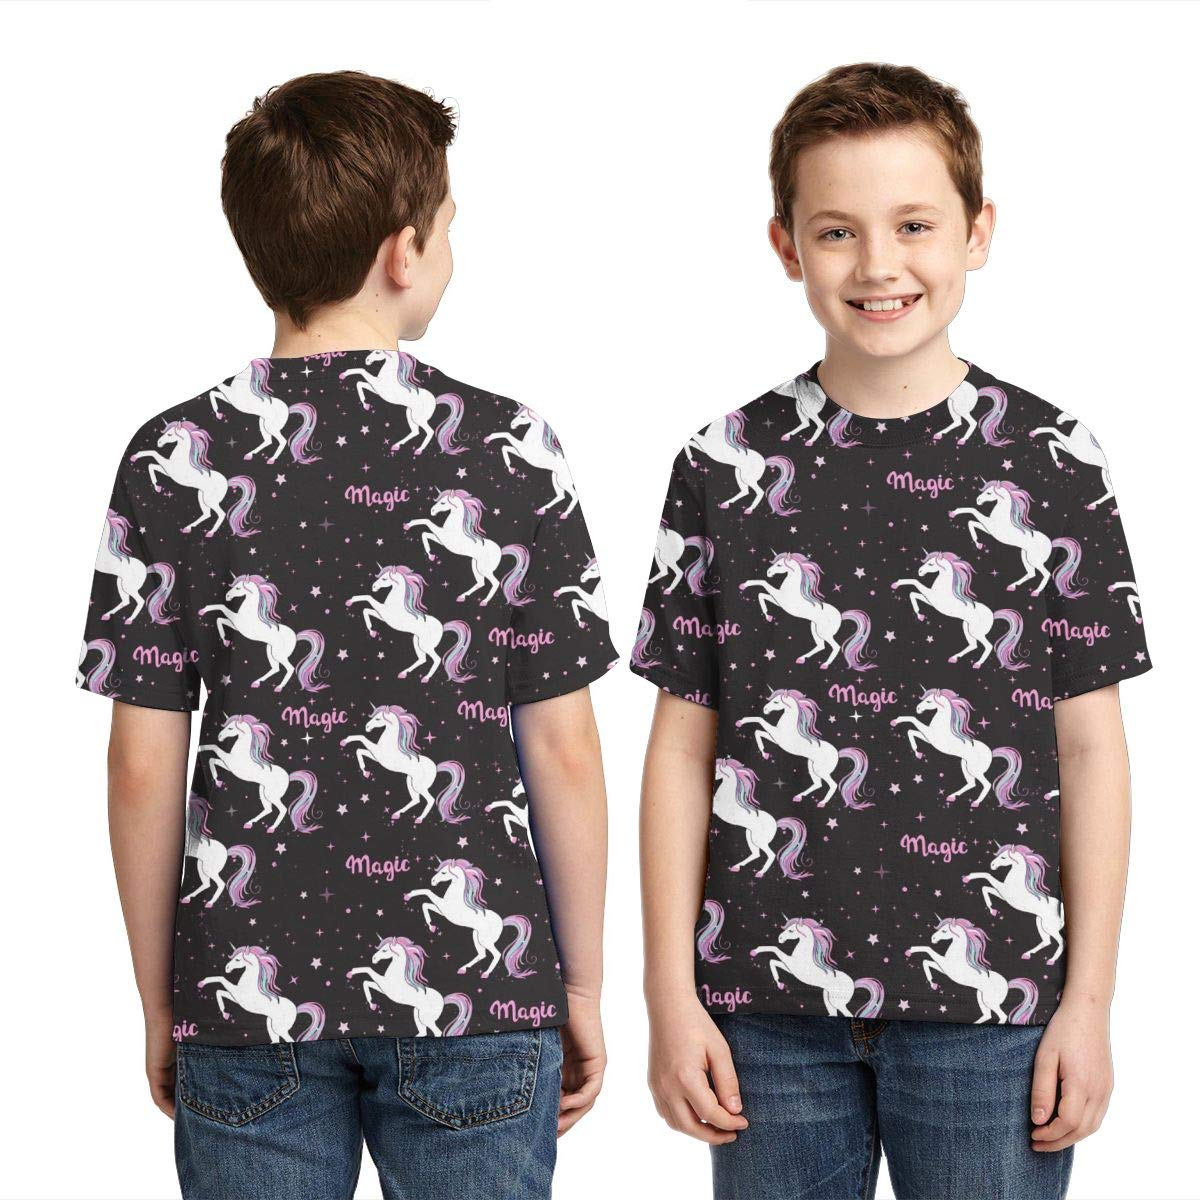 Unicorn and The Inscription Magic Kids Print Graphic Tee Short Sleeve T-Shirt